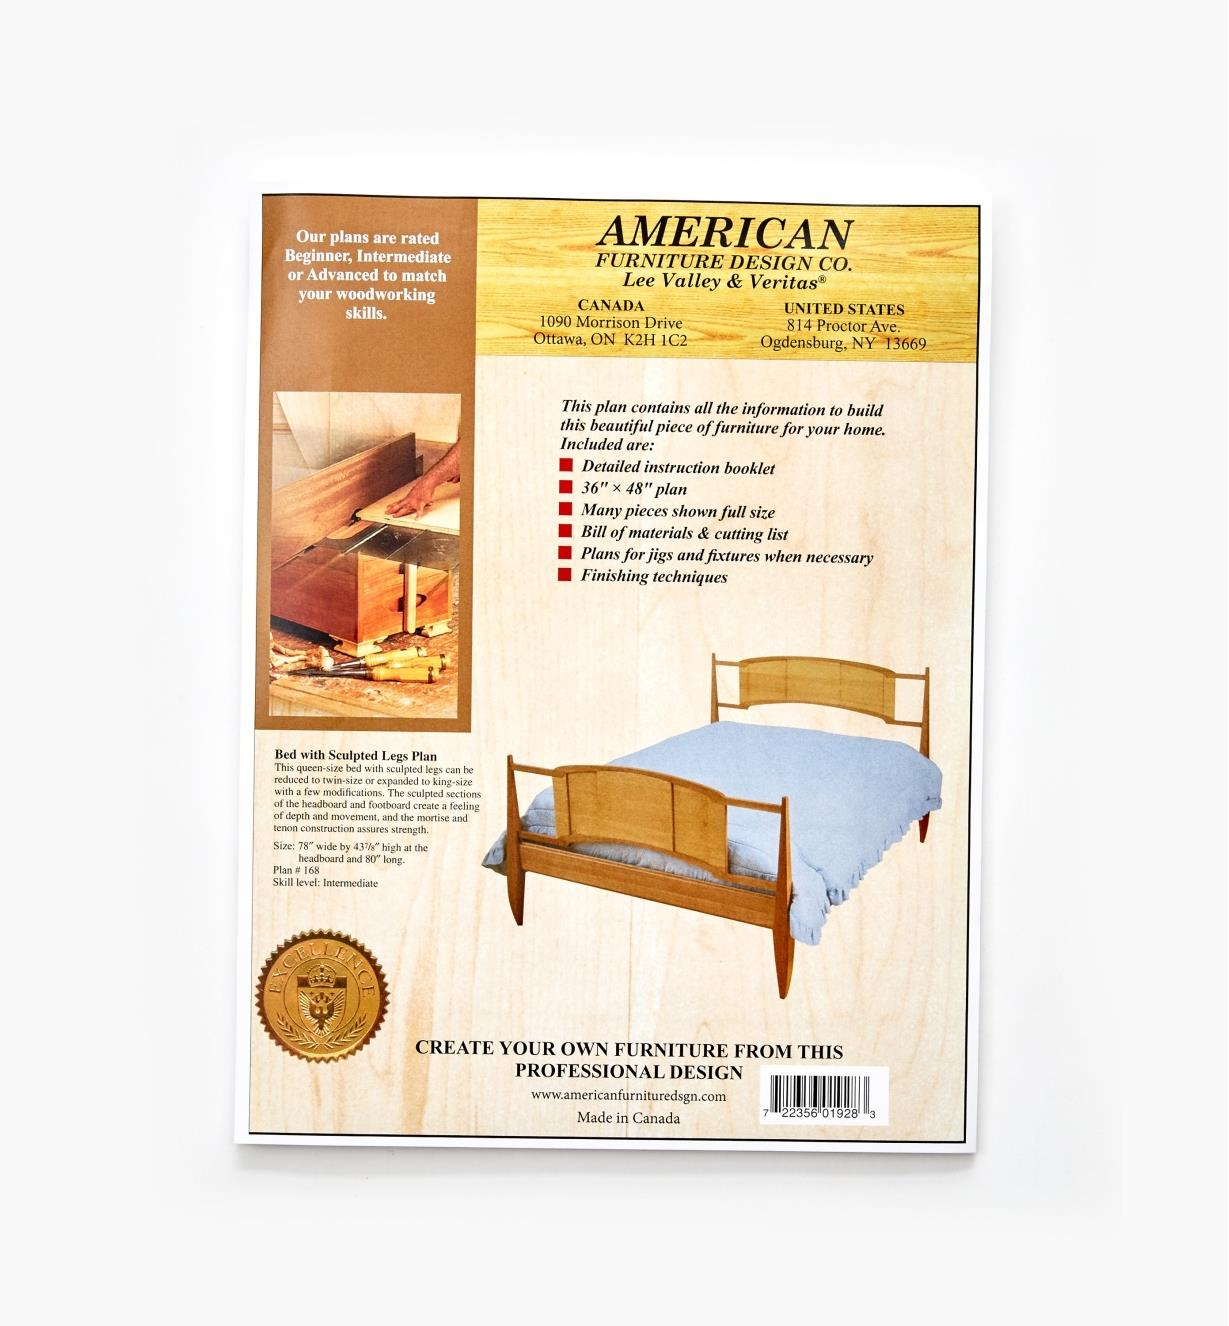 01L5067 - Bed with Sculpted Legs Plan